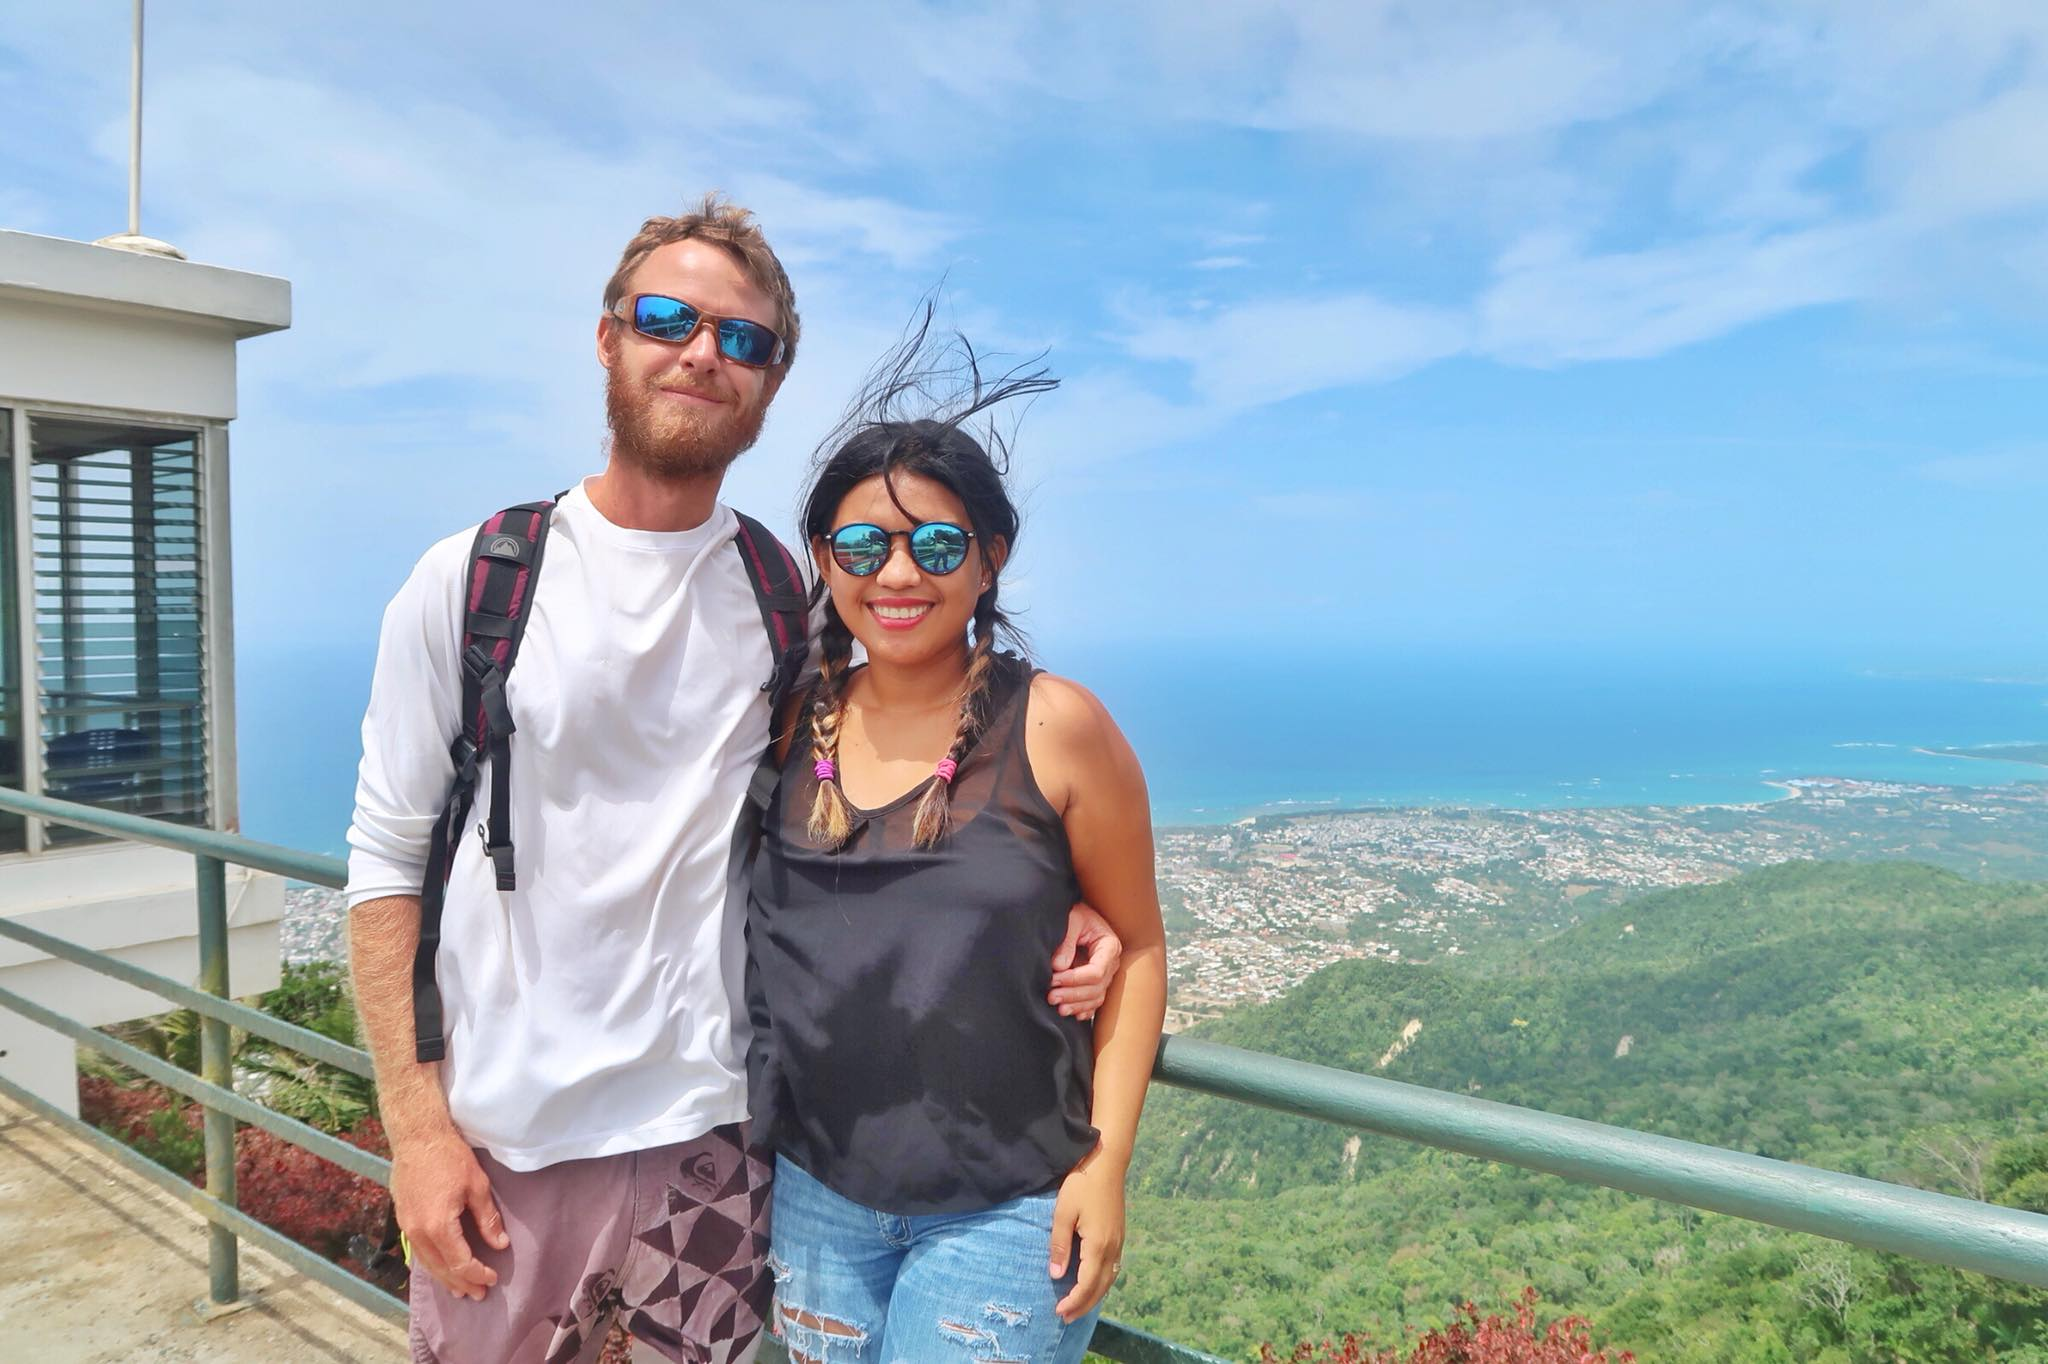 Liveaboard Life Day 158 - 159 : Motorbike Trip + Cable Car Ride and Shopping in Puerto Plata